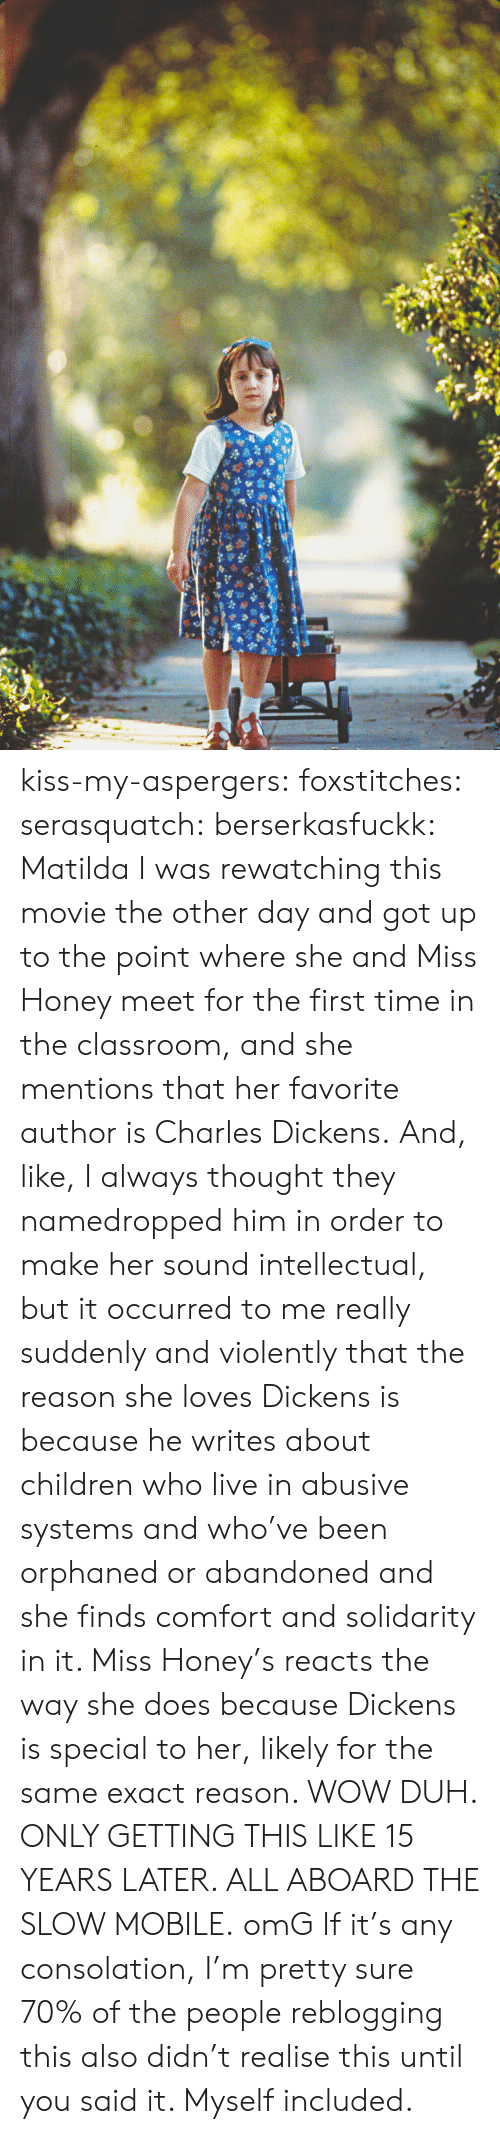 Matilda: kiss-my-aspergers:  foxstitches:  serasquatch:  berserkasfuckk:  Matilda  I was rewatching this movie the other day and got up to the point where she and Miss Honey meet for the first time in the classroom, and she mentions that her favorite author is Charles Dickens. And, like, I always thought they namedropped him in order to make her sound intellectual, but it occurred to me really suddenly and violently that the reason she loves Dickens is because he writes about children who live in abusive systems and who've been orphaned or abandoned and she finds comfort and solidarity in it. Miss Honey's reacts the way she does because Dickens is special to her, likely for the same exact reason. WOW DUH. ONLY GETTING THIS LIKE 15 YEARS LATER. ALL ABOARD THE SLOW MOBILE.  omG  If it's any consolation, I'm pretty sure 70% of the people reblogging this also didn't realise this until you said it. Myself included.